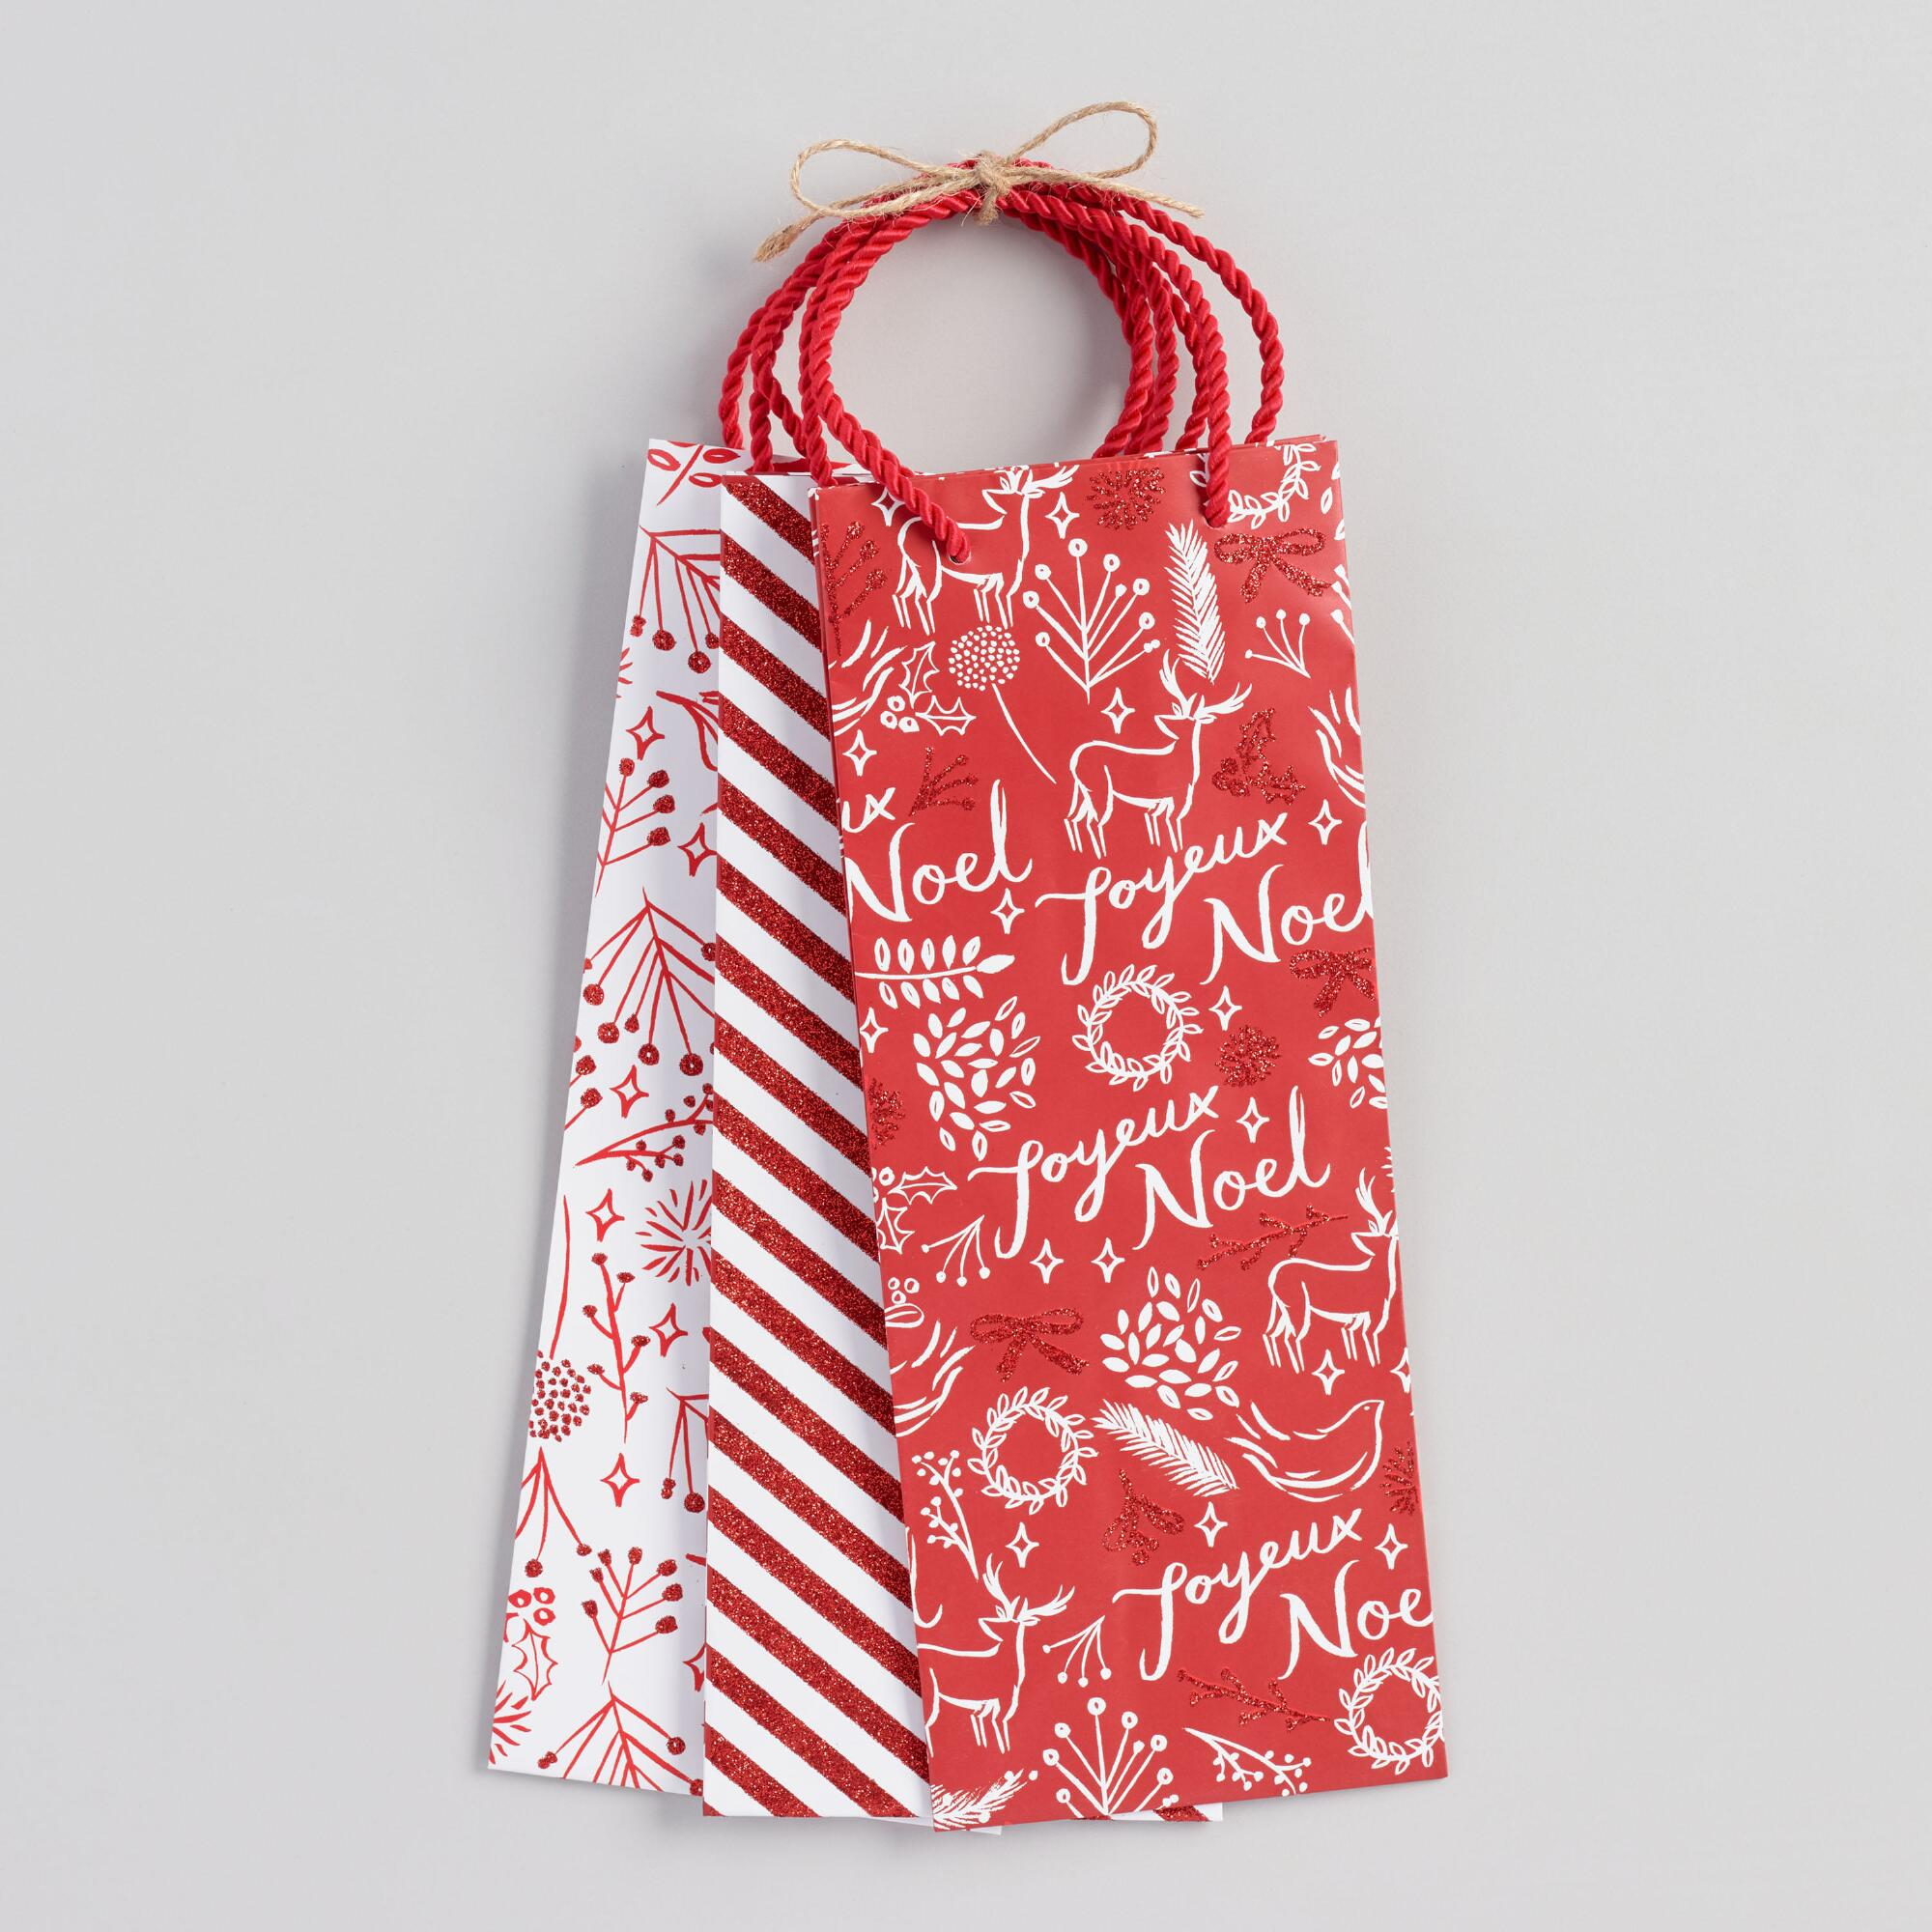 Red And White Patterned Wine Gift Bags Set Of 3 by World Market